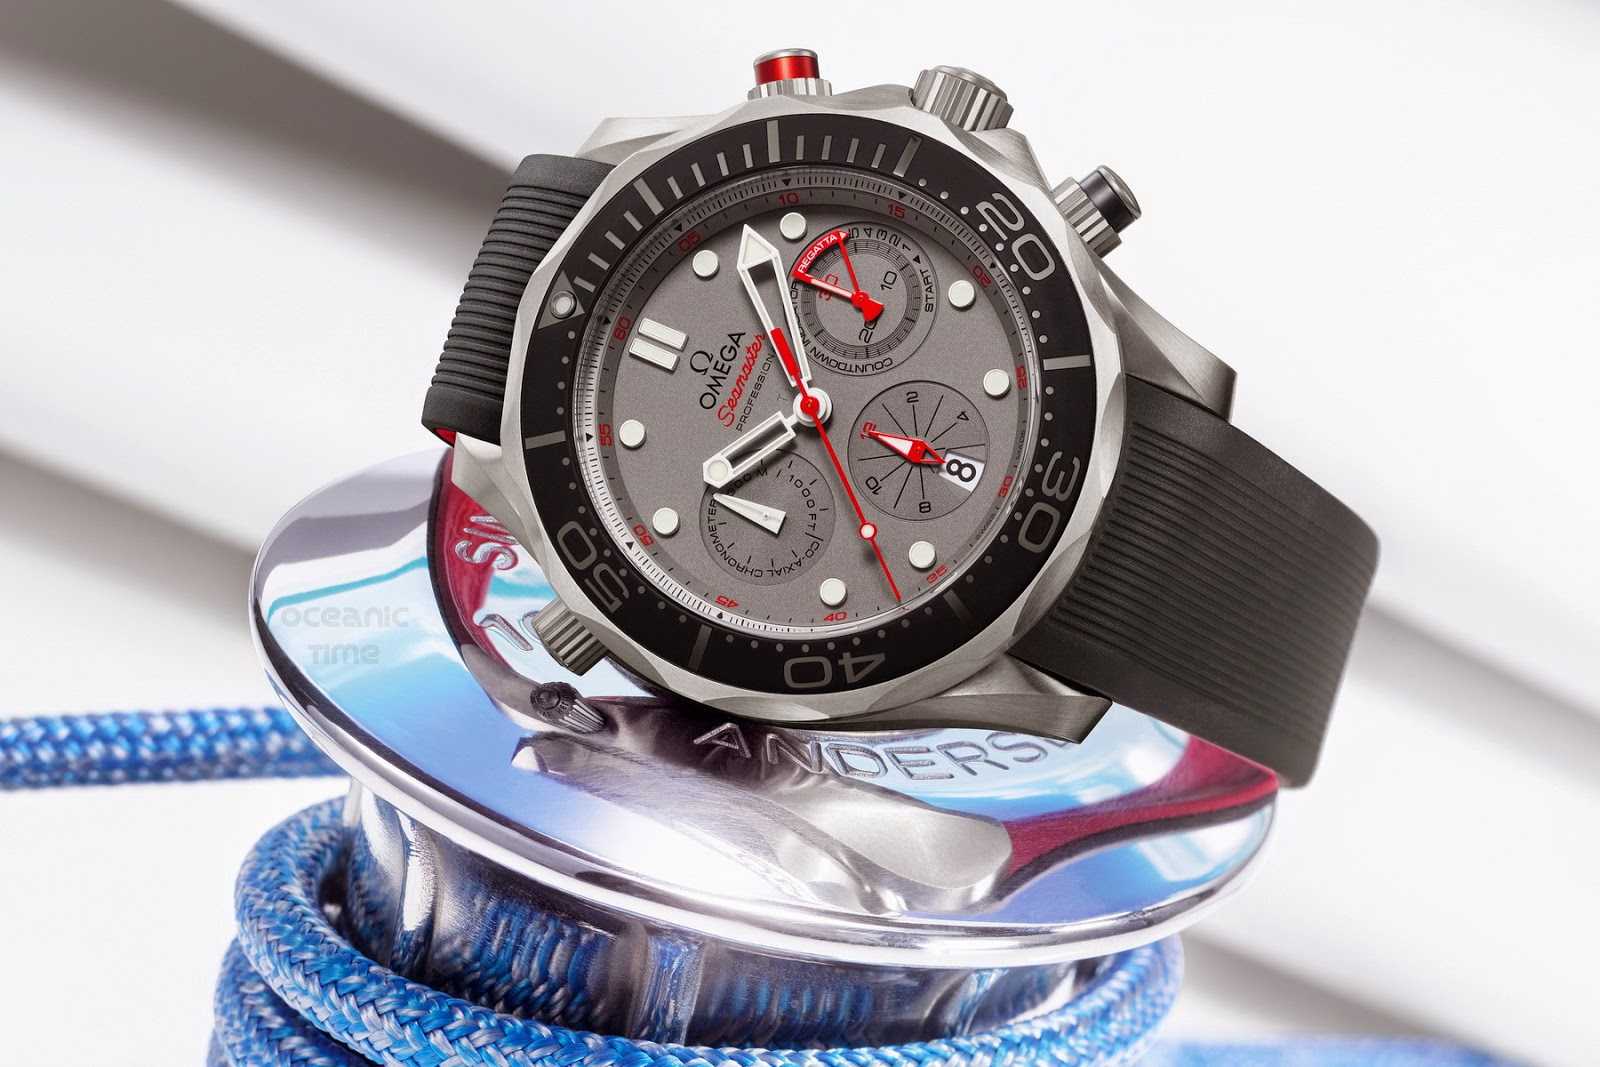 Omega Seamaster diver 300 m ETNZ for the 35th America's Cup